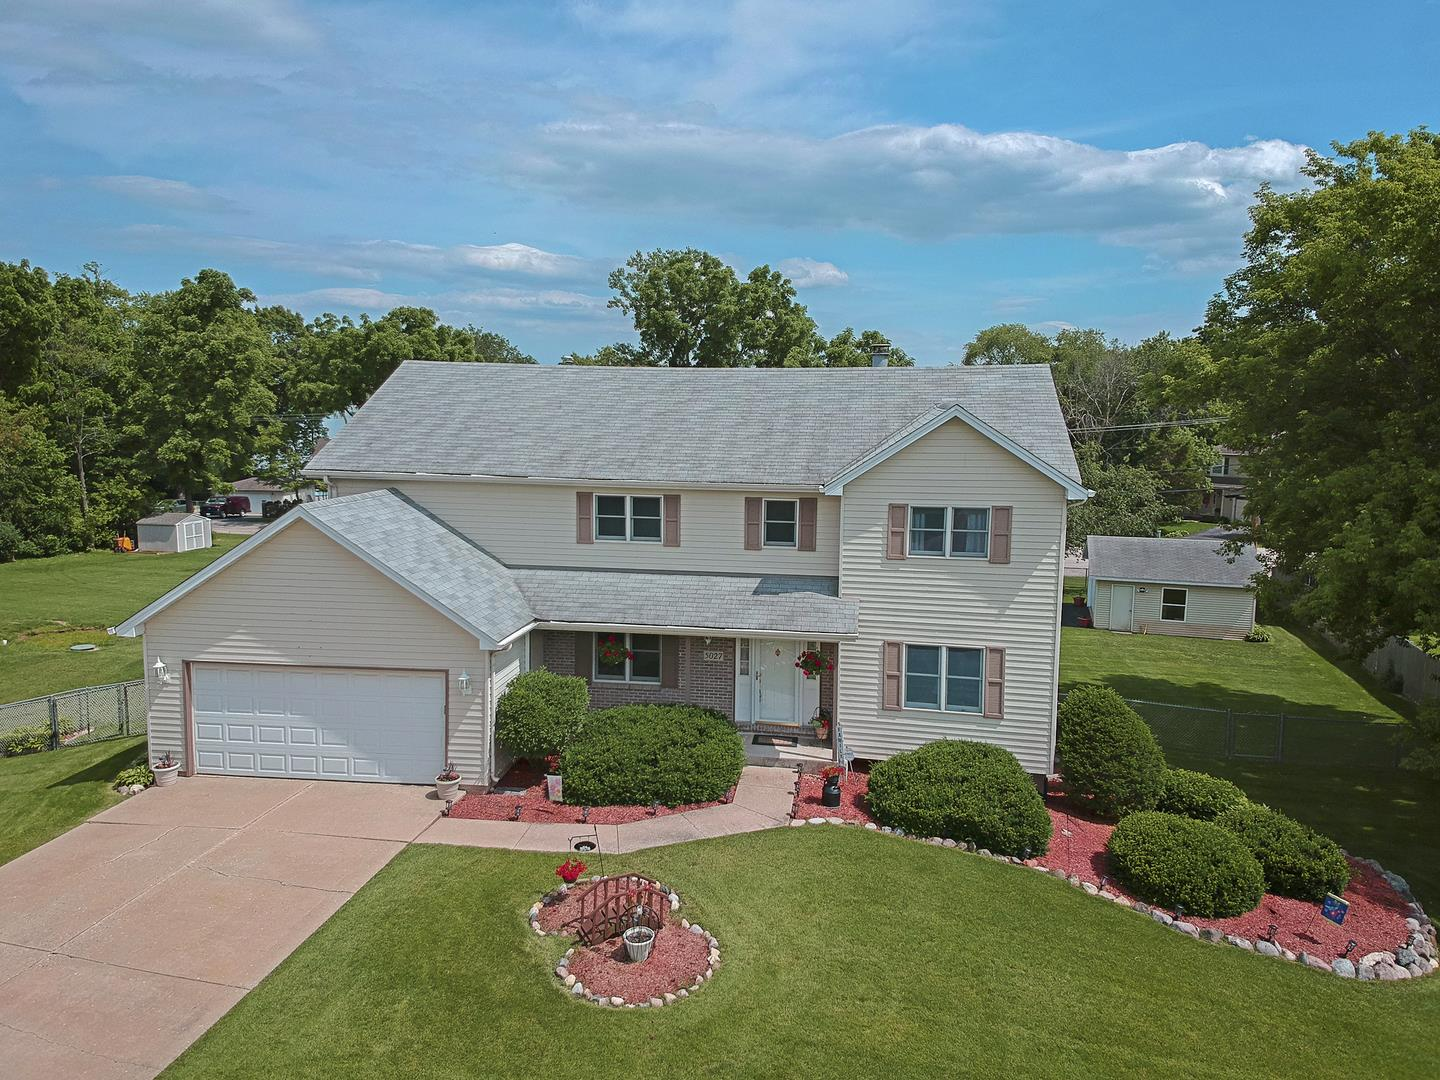 5027 Spring Road, McHenry, IL 60050 - #: 10530772